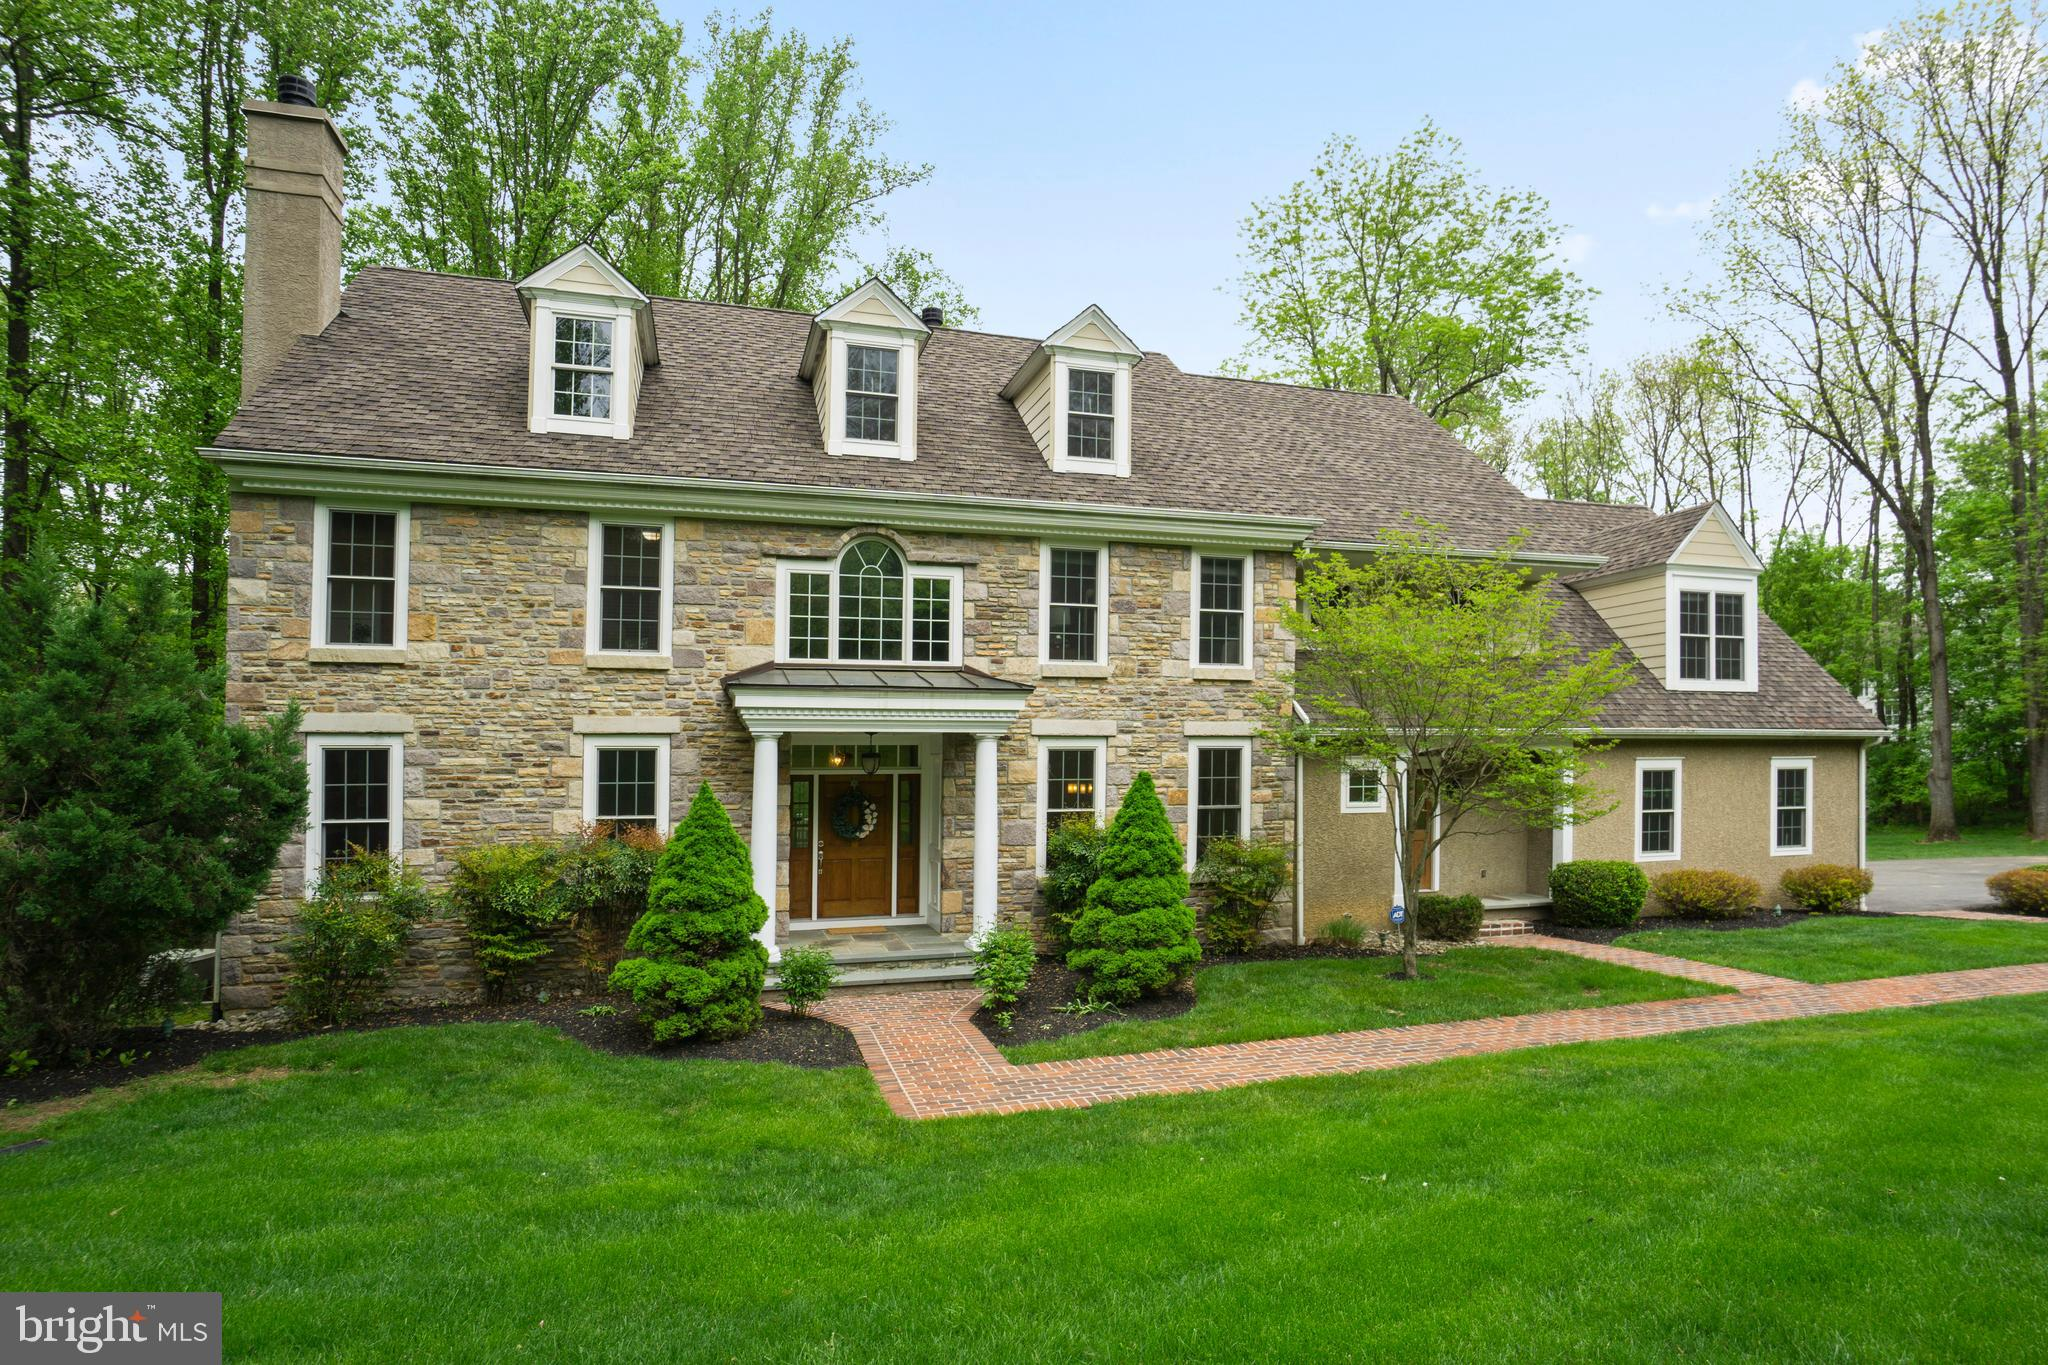 475 WEBB ROAD, CHADDS FORD, PA 19317